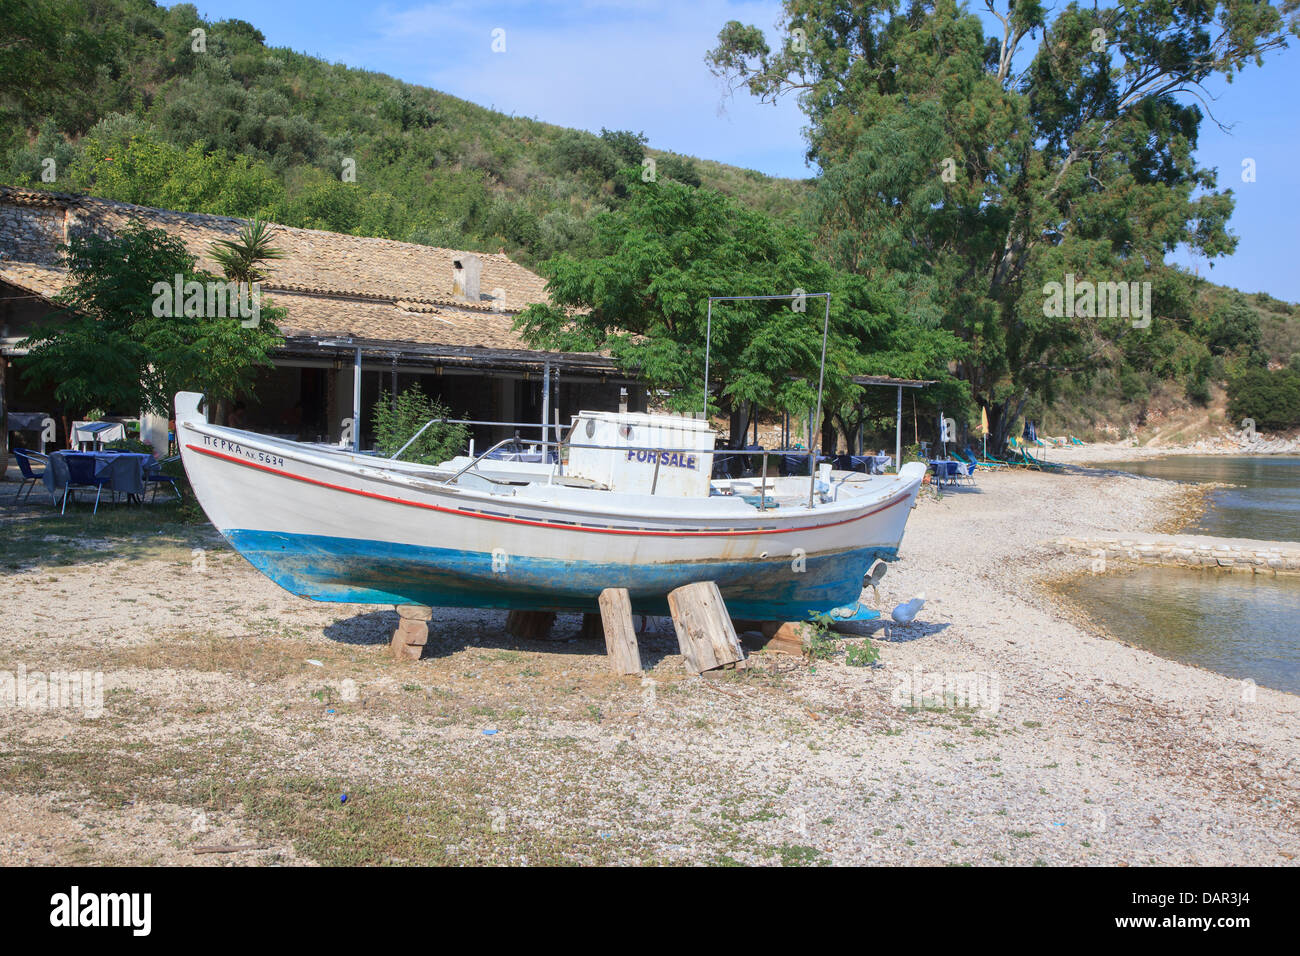 Old boat with For Sale sign in front of the Eucalyptus restaurant in Agios Stephanos Corfu - Stock Image